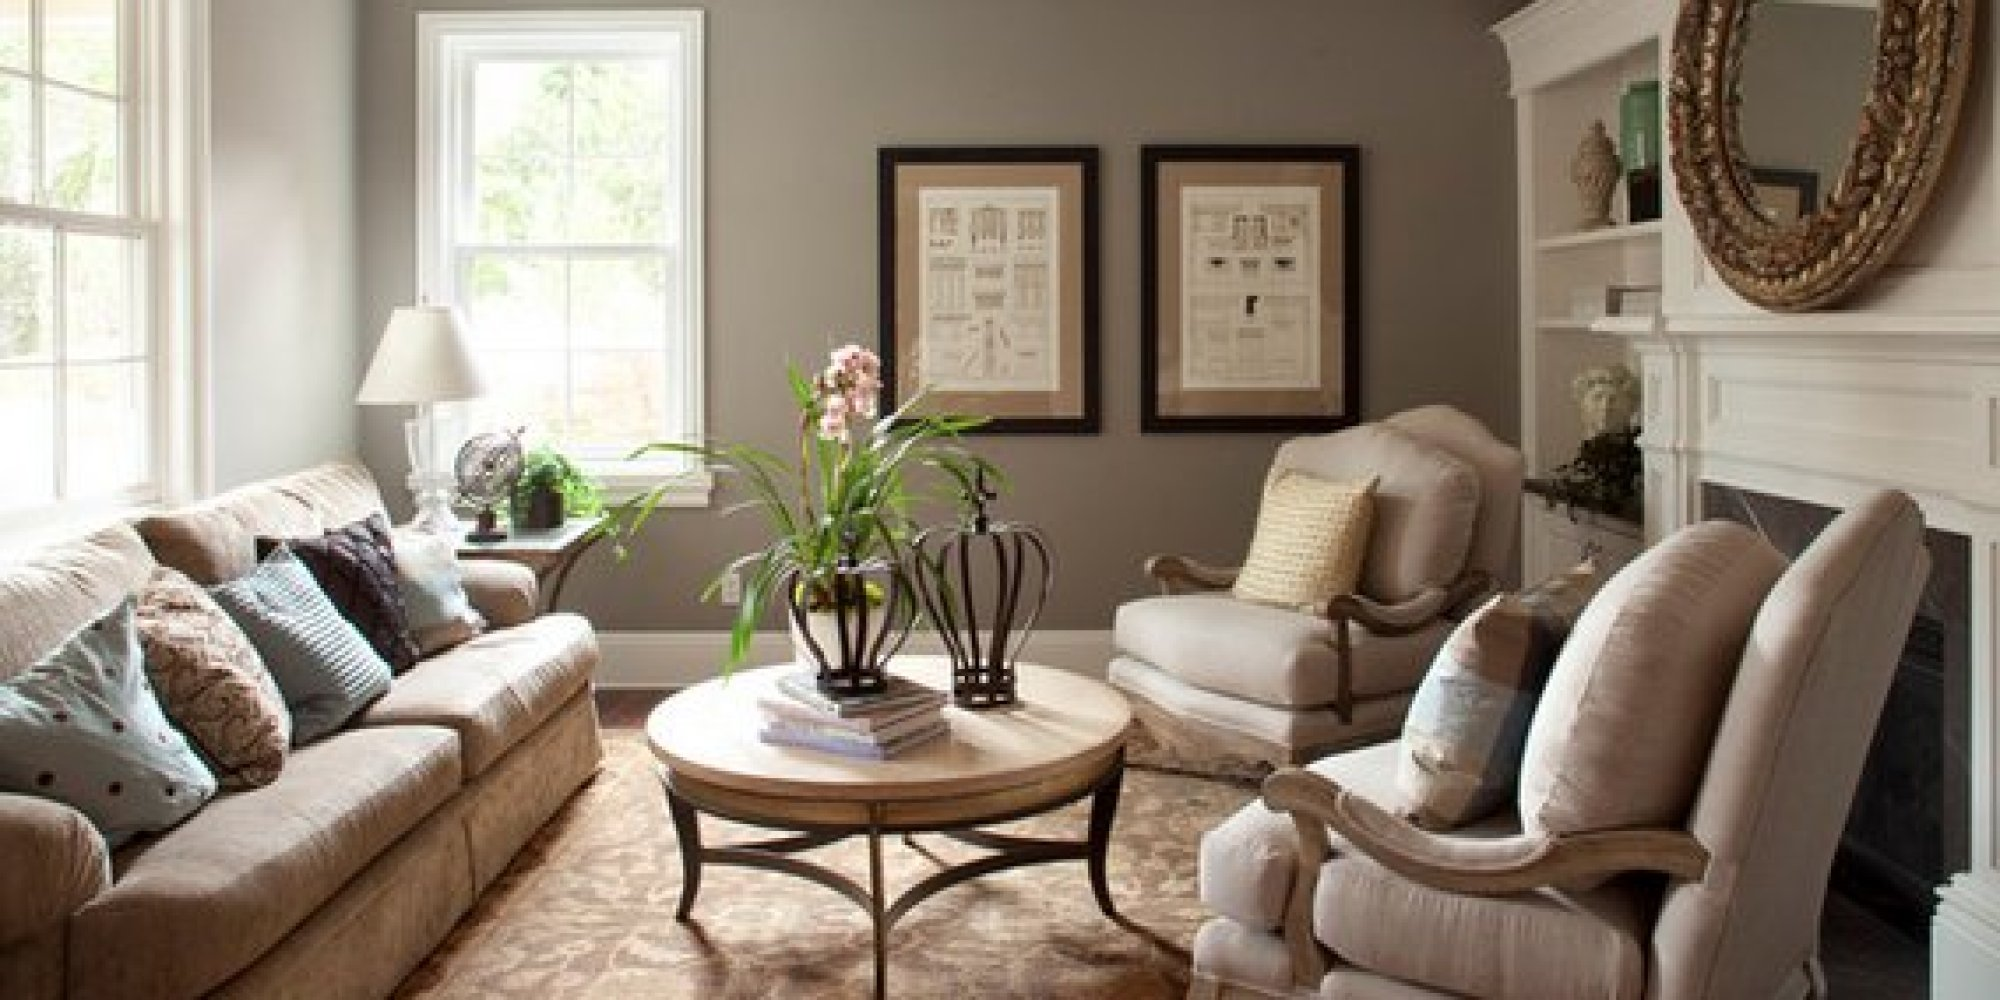 Paint Colors For Living Room The 6 Best Paint Colors That Work In Any Home  Huffpost